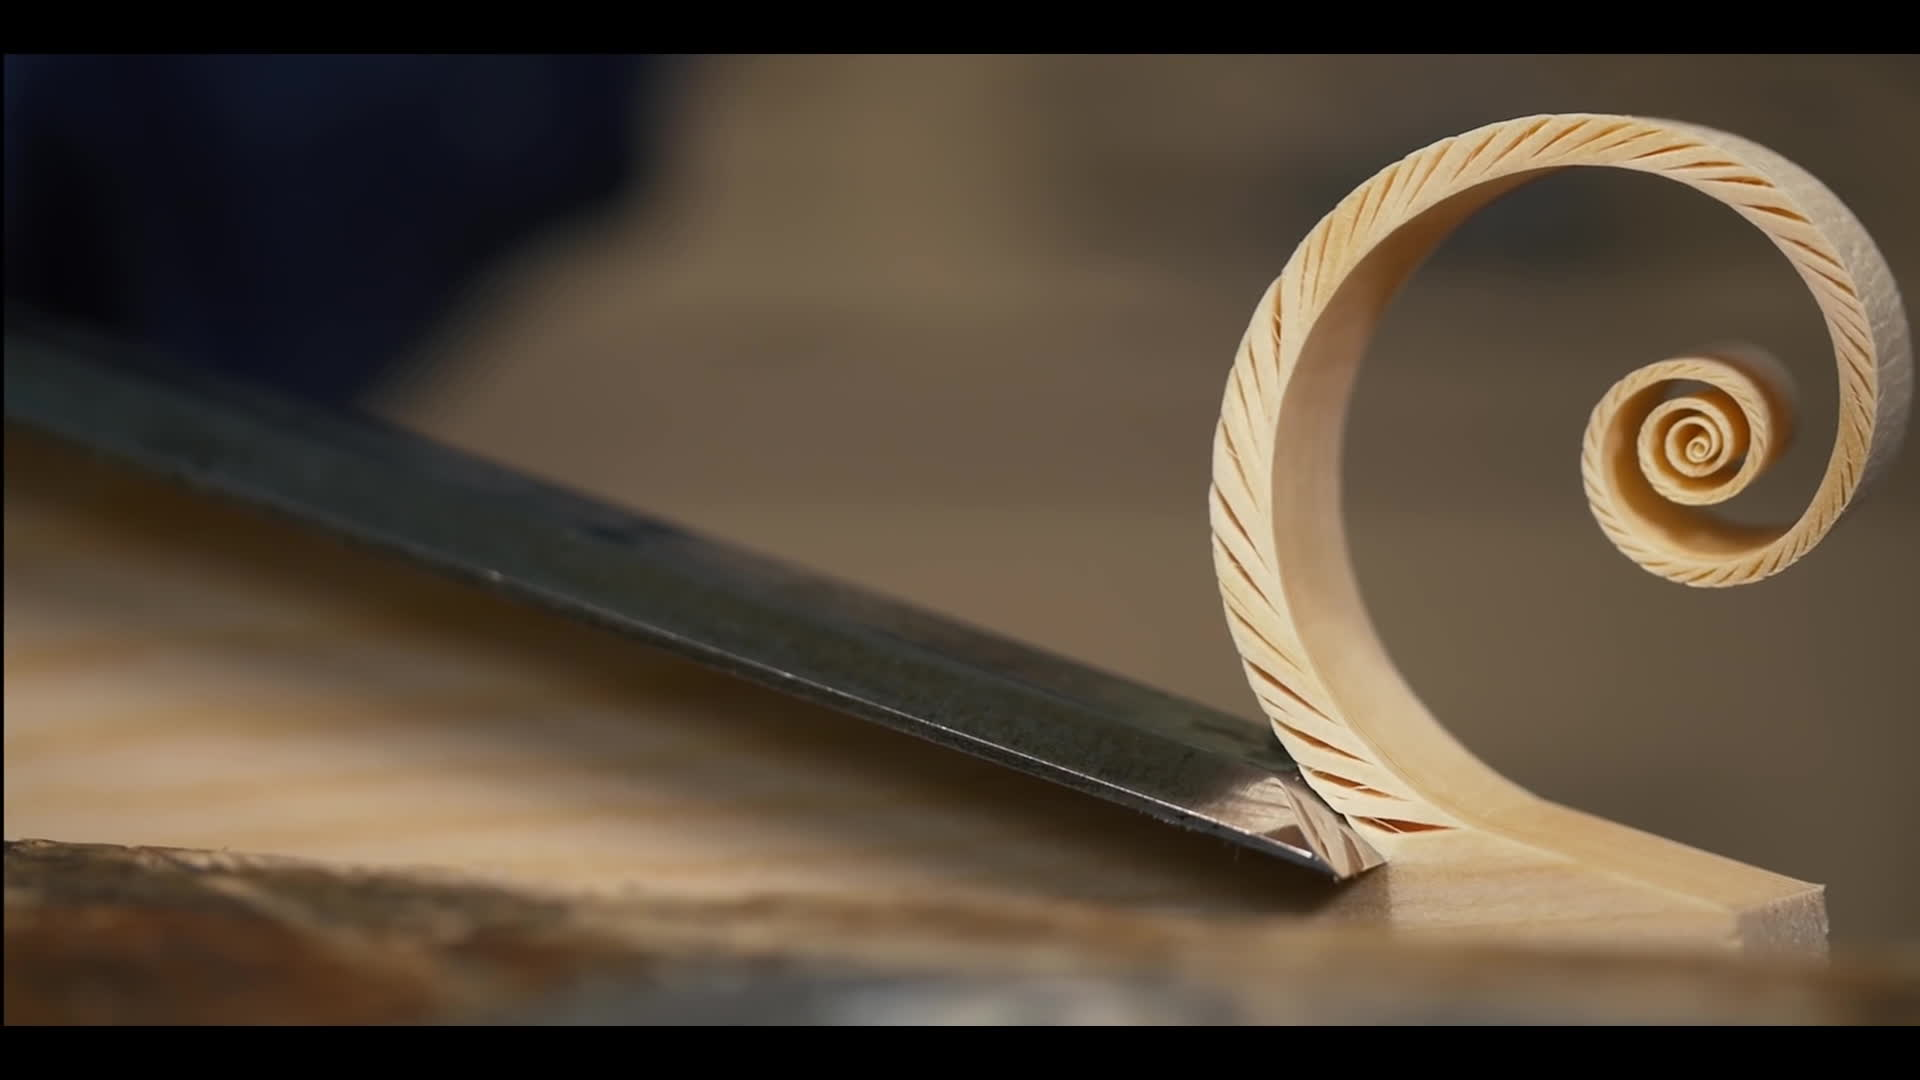 hand tools, oddlysatisfying, woodworking, Fibonacci Spiral Shaving - with Paul Sellers GIFs